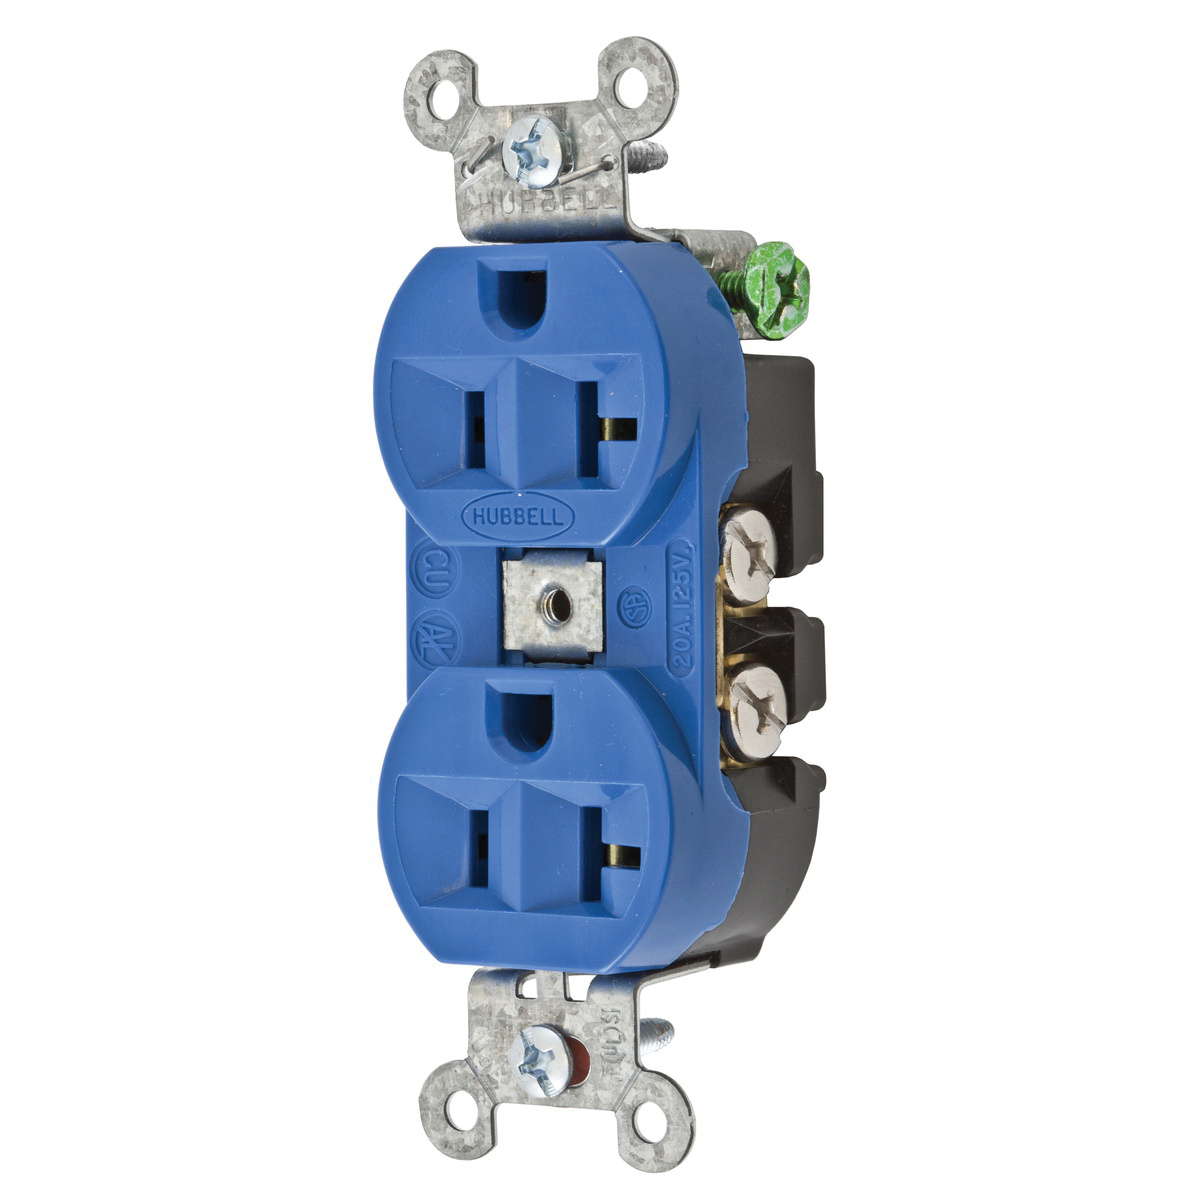 hight resolution of hubbell wiring 5362bl commercial industrial grade heavy duty straight blade receptacle 2 pole 3 wire 125 volt 20 amp nema 5 20r blue hubbell pro straight